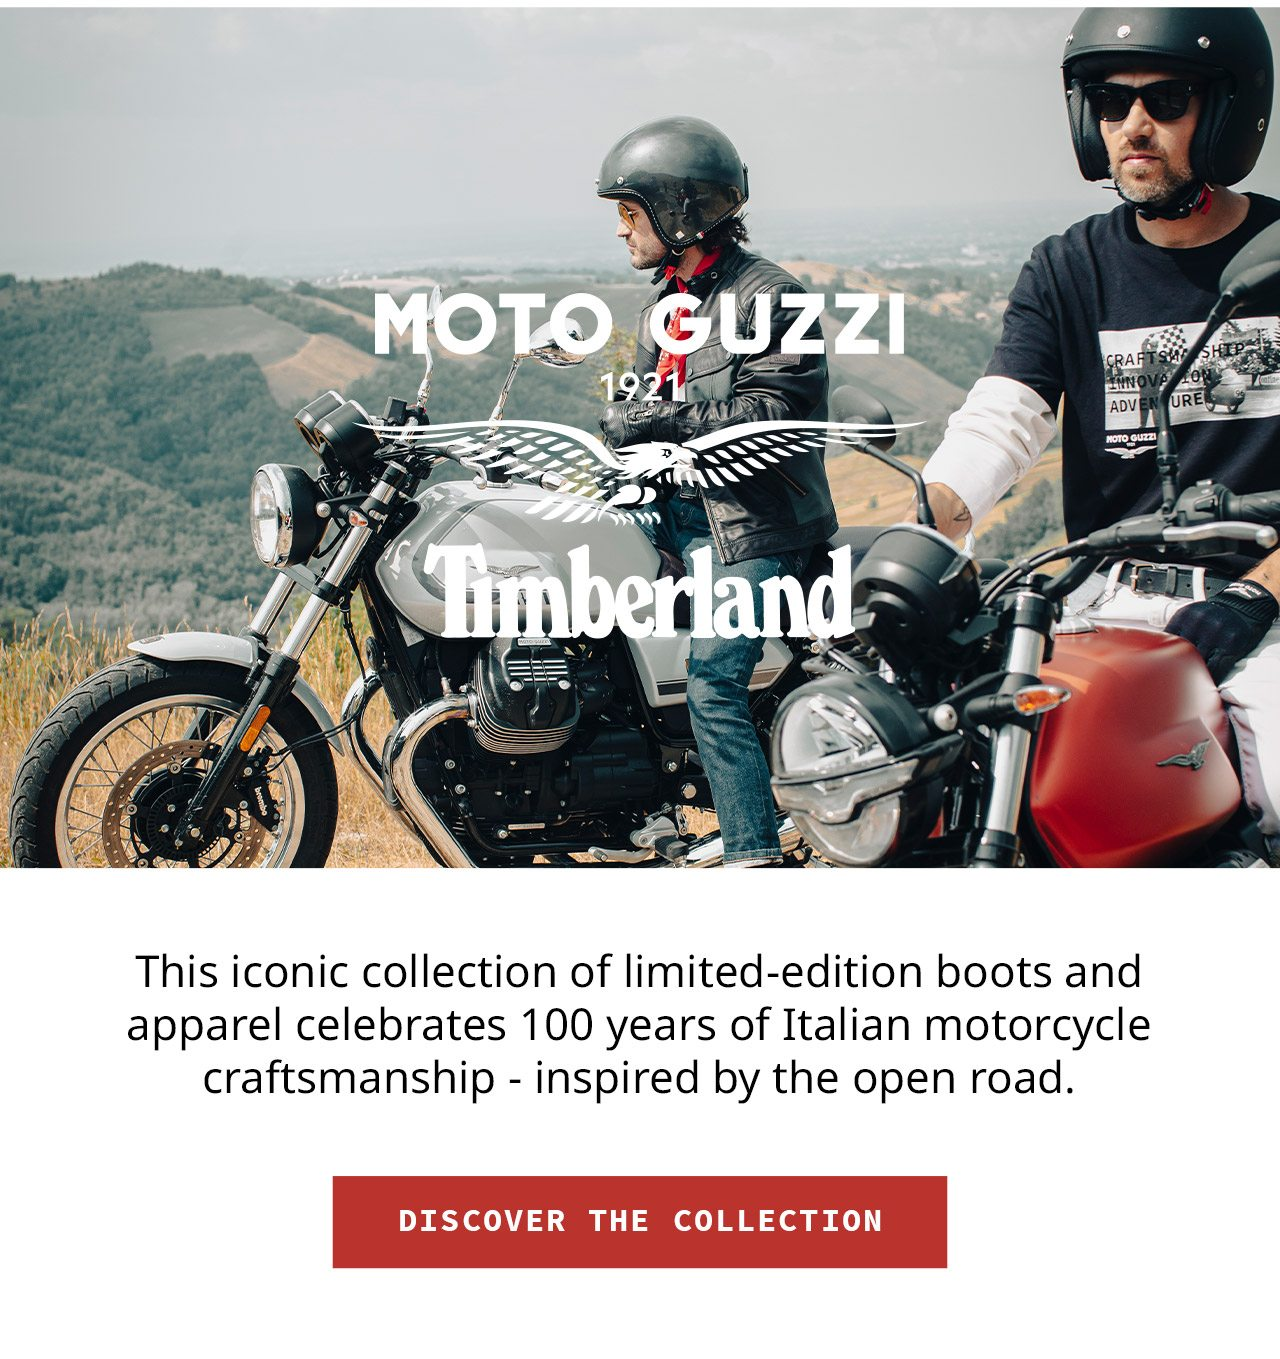 This iconic collection of limited-edition boots and apparel celebrates 100 years of Italian motorcycle craftsmanship - inspired by the open road. DISCOVER THE COLLECTION